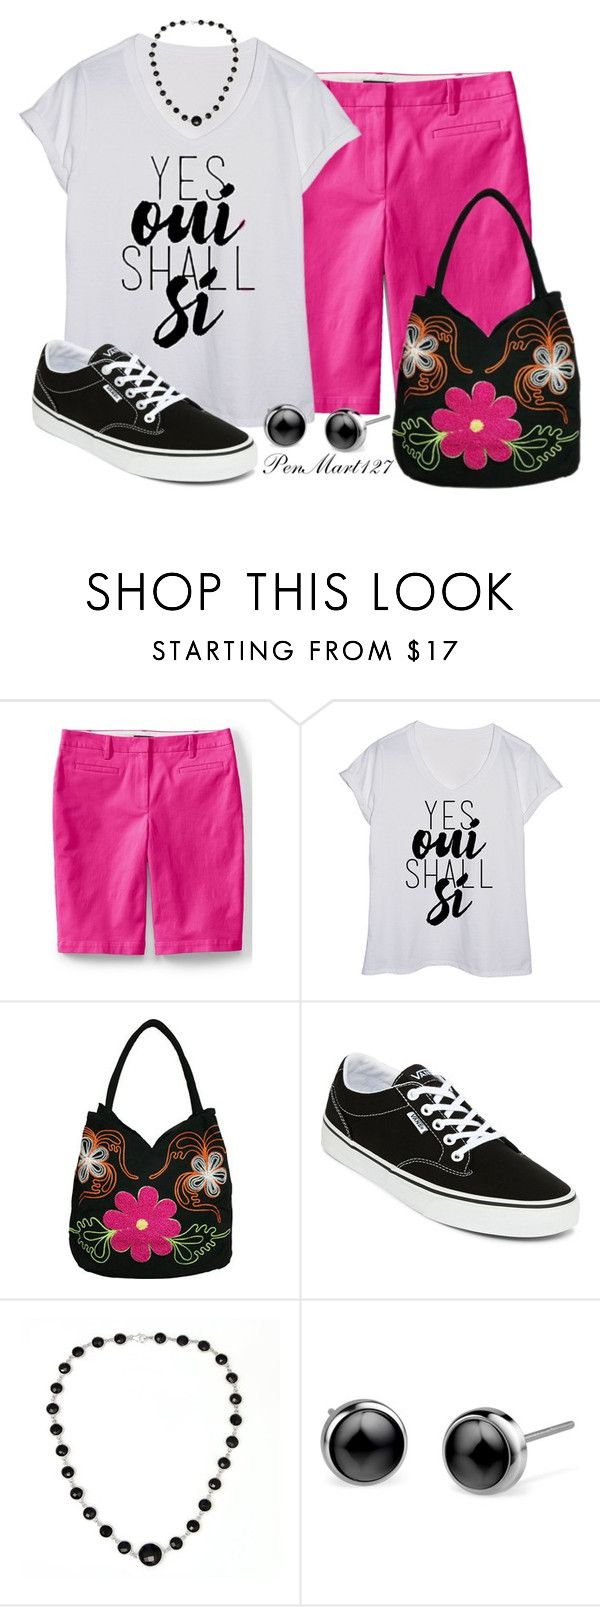 """""""Bermuda Shorts #Plussize"""" by penny-martin on Polyvore featuring Lands' End, Bamboo54, Vans and plus size clothing"""